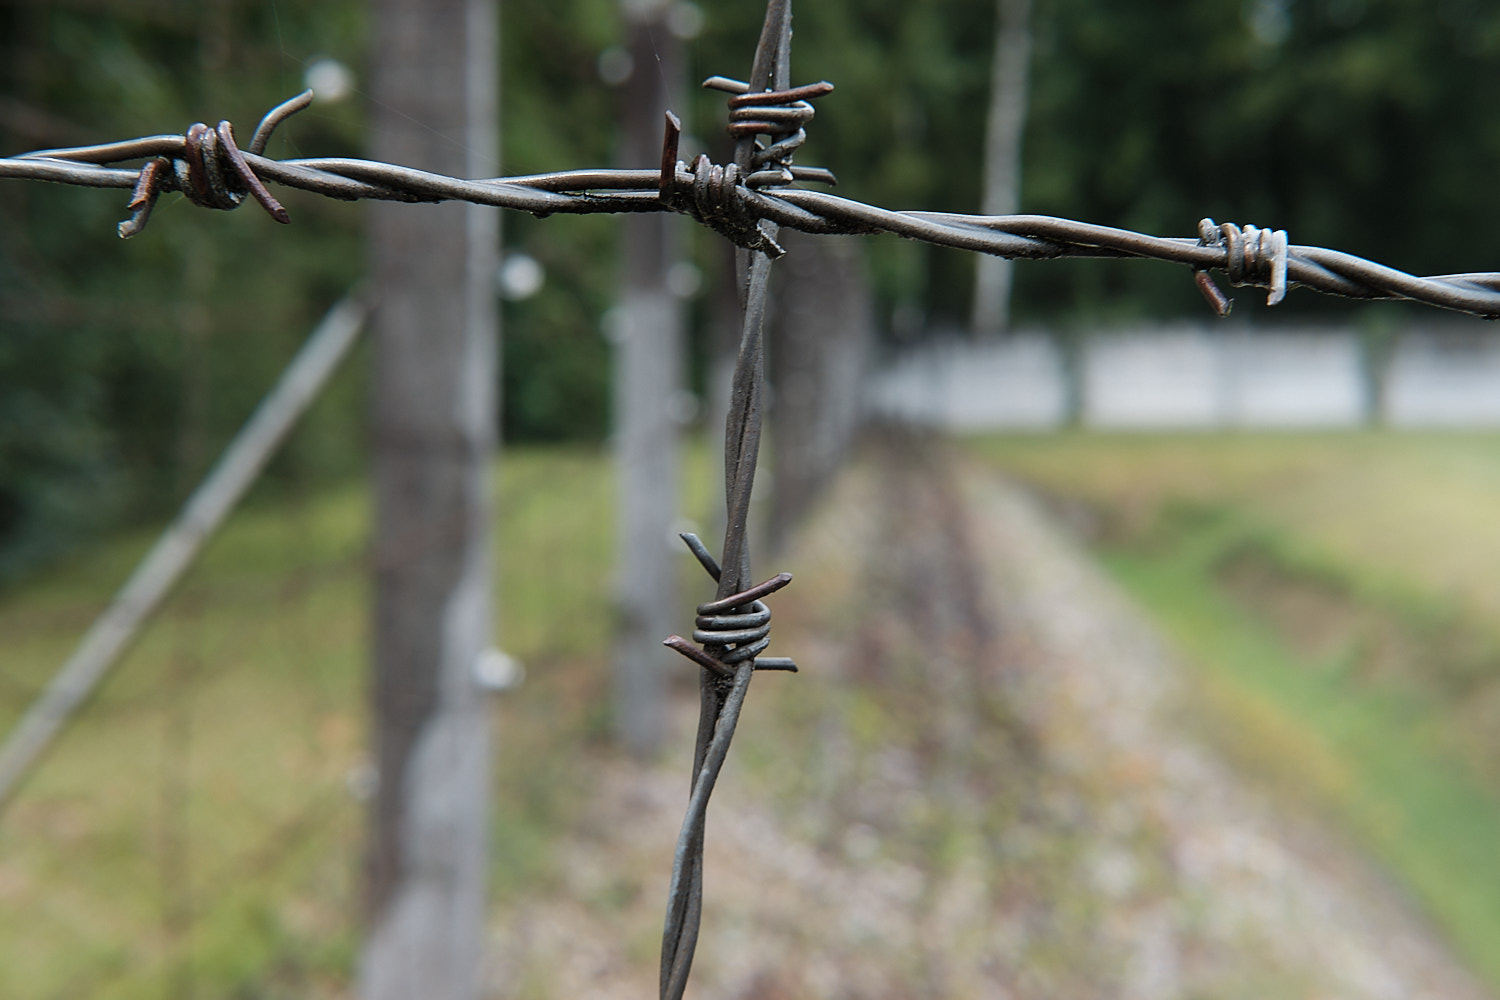 Historical site of the concentration camp of Dachau. Guided tour